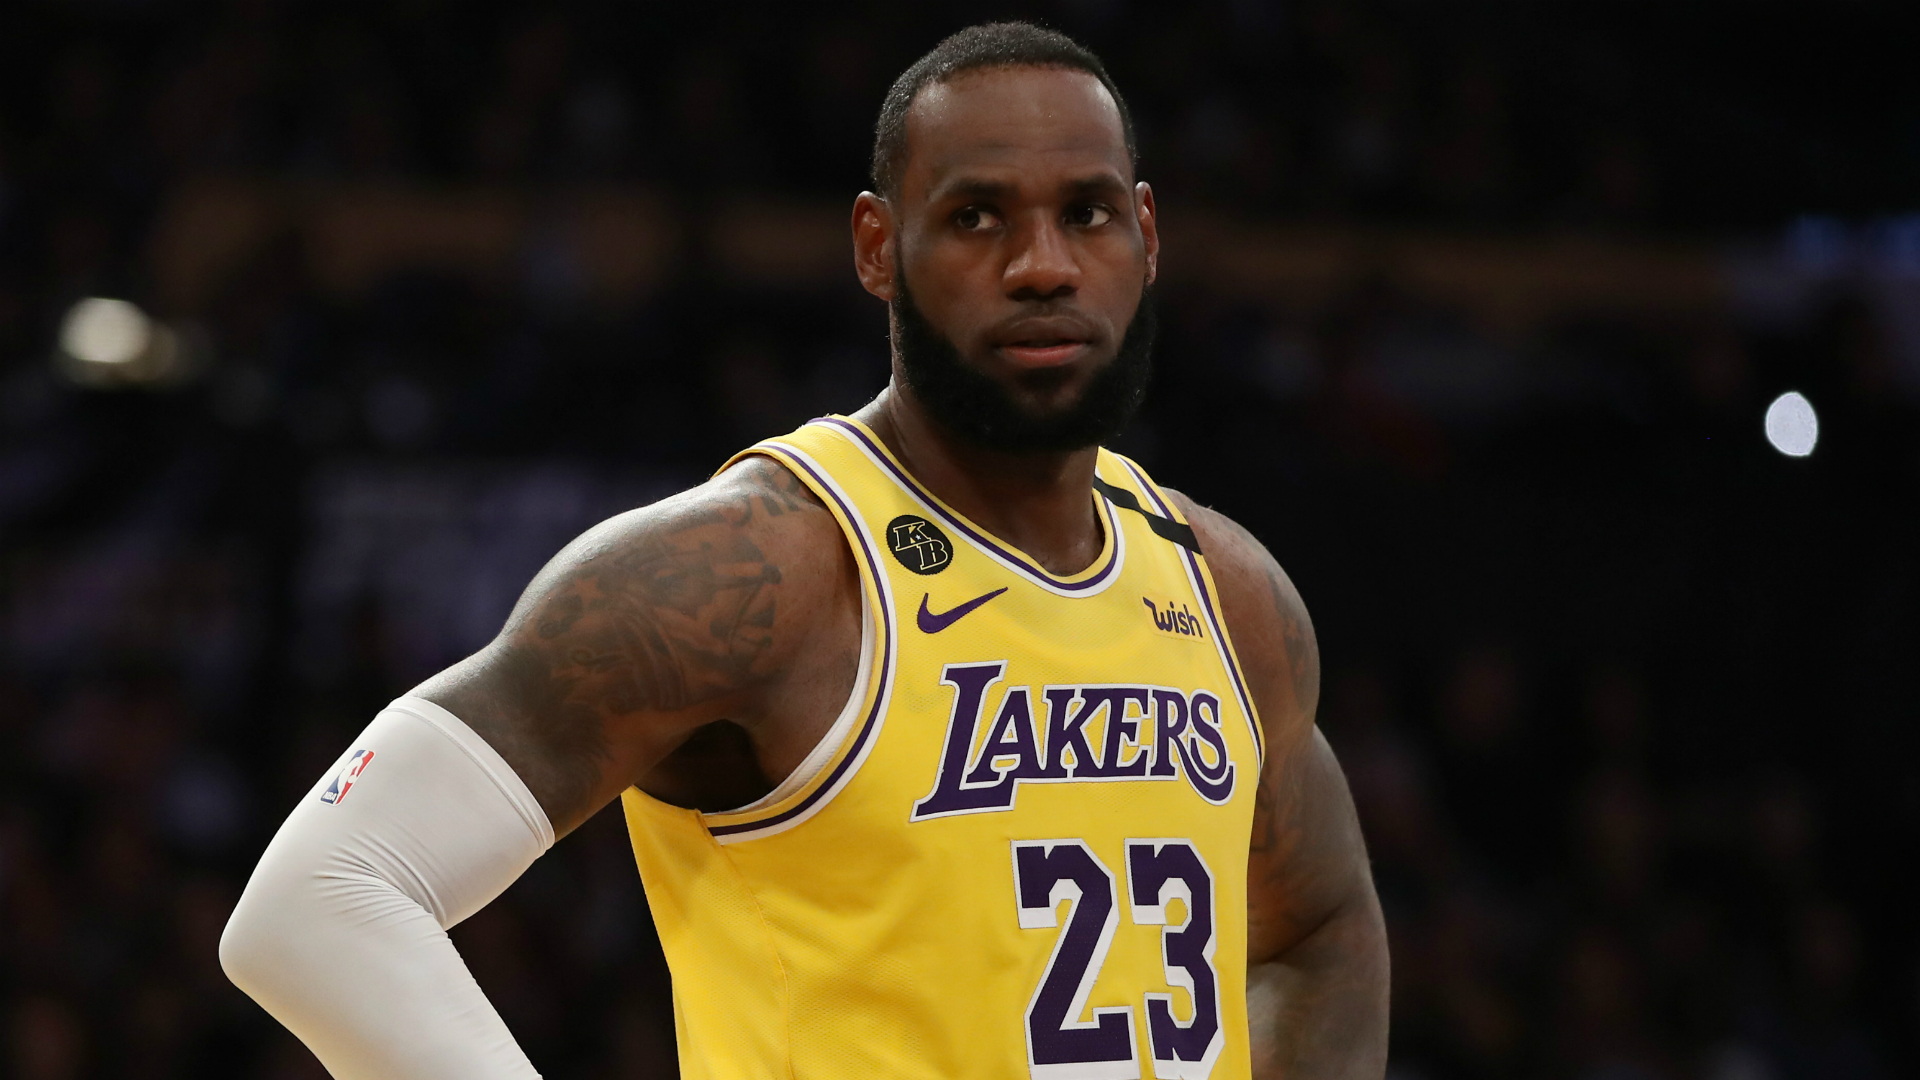 Los Angeles Lakers star LeBron James discussed the NBA's hiatus due to COVID-19.